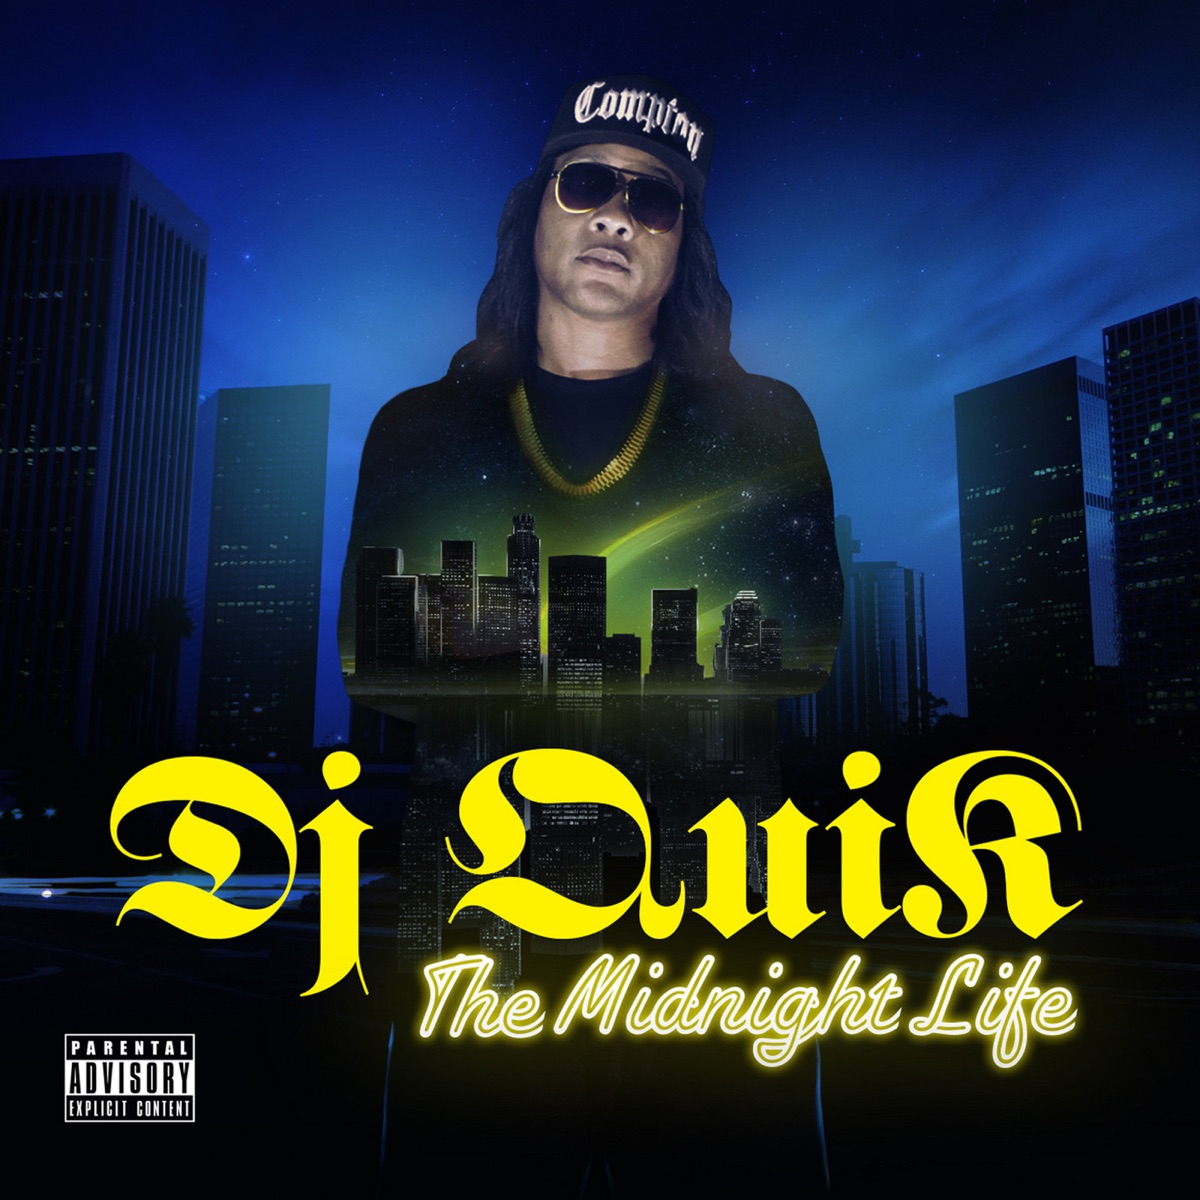 The Midnight Life DJ Quik CD cover